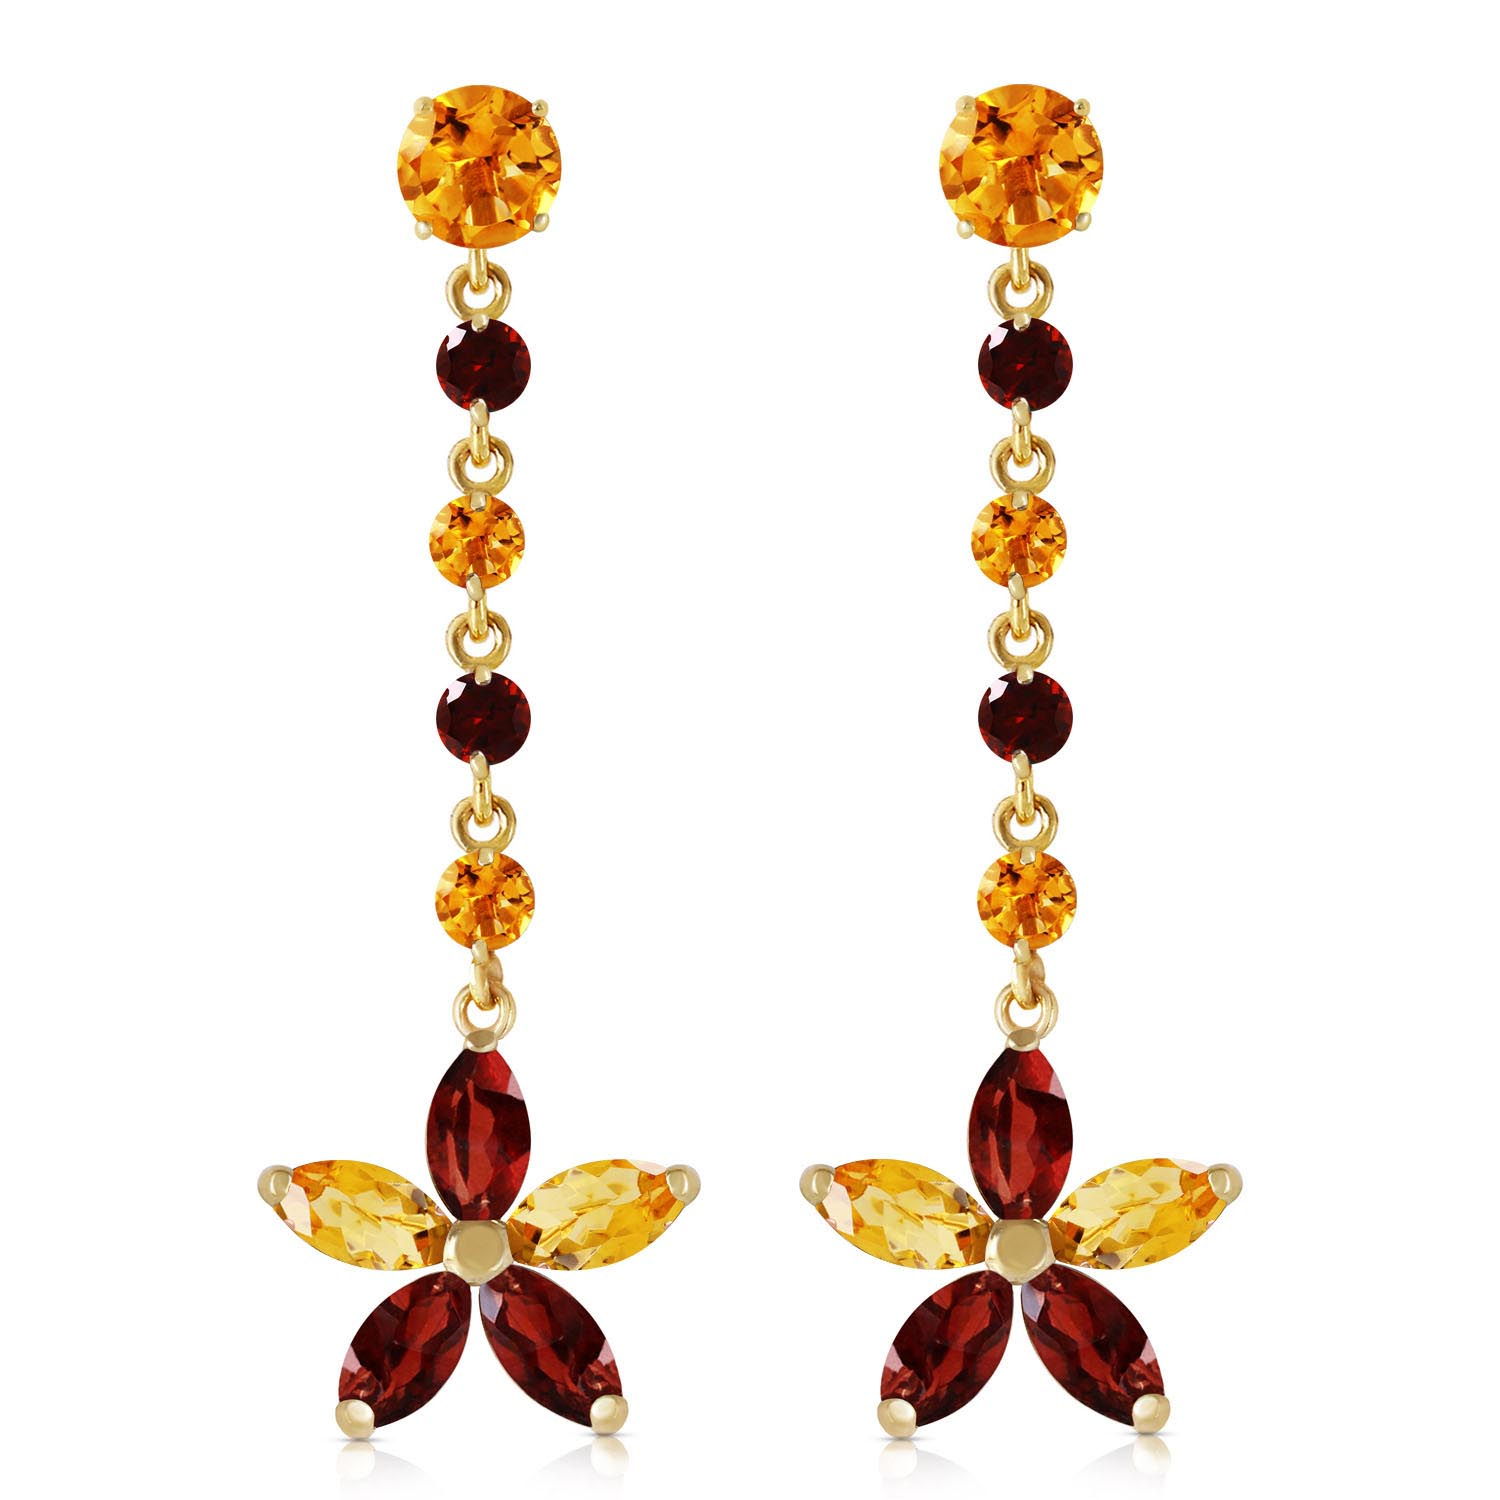 Citrine and Garnet Daisy Chain Drop Earrings 4.8ctw in 9ct Gold